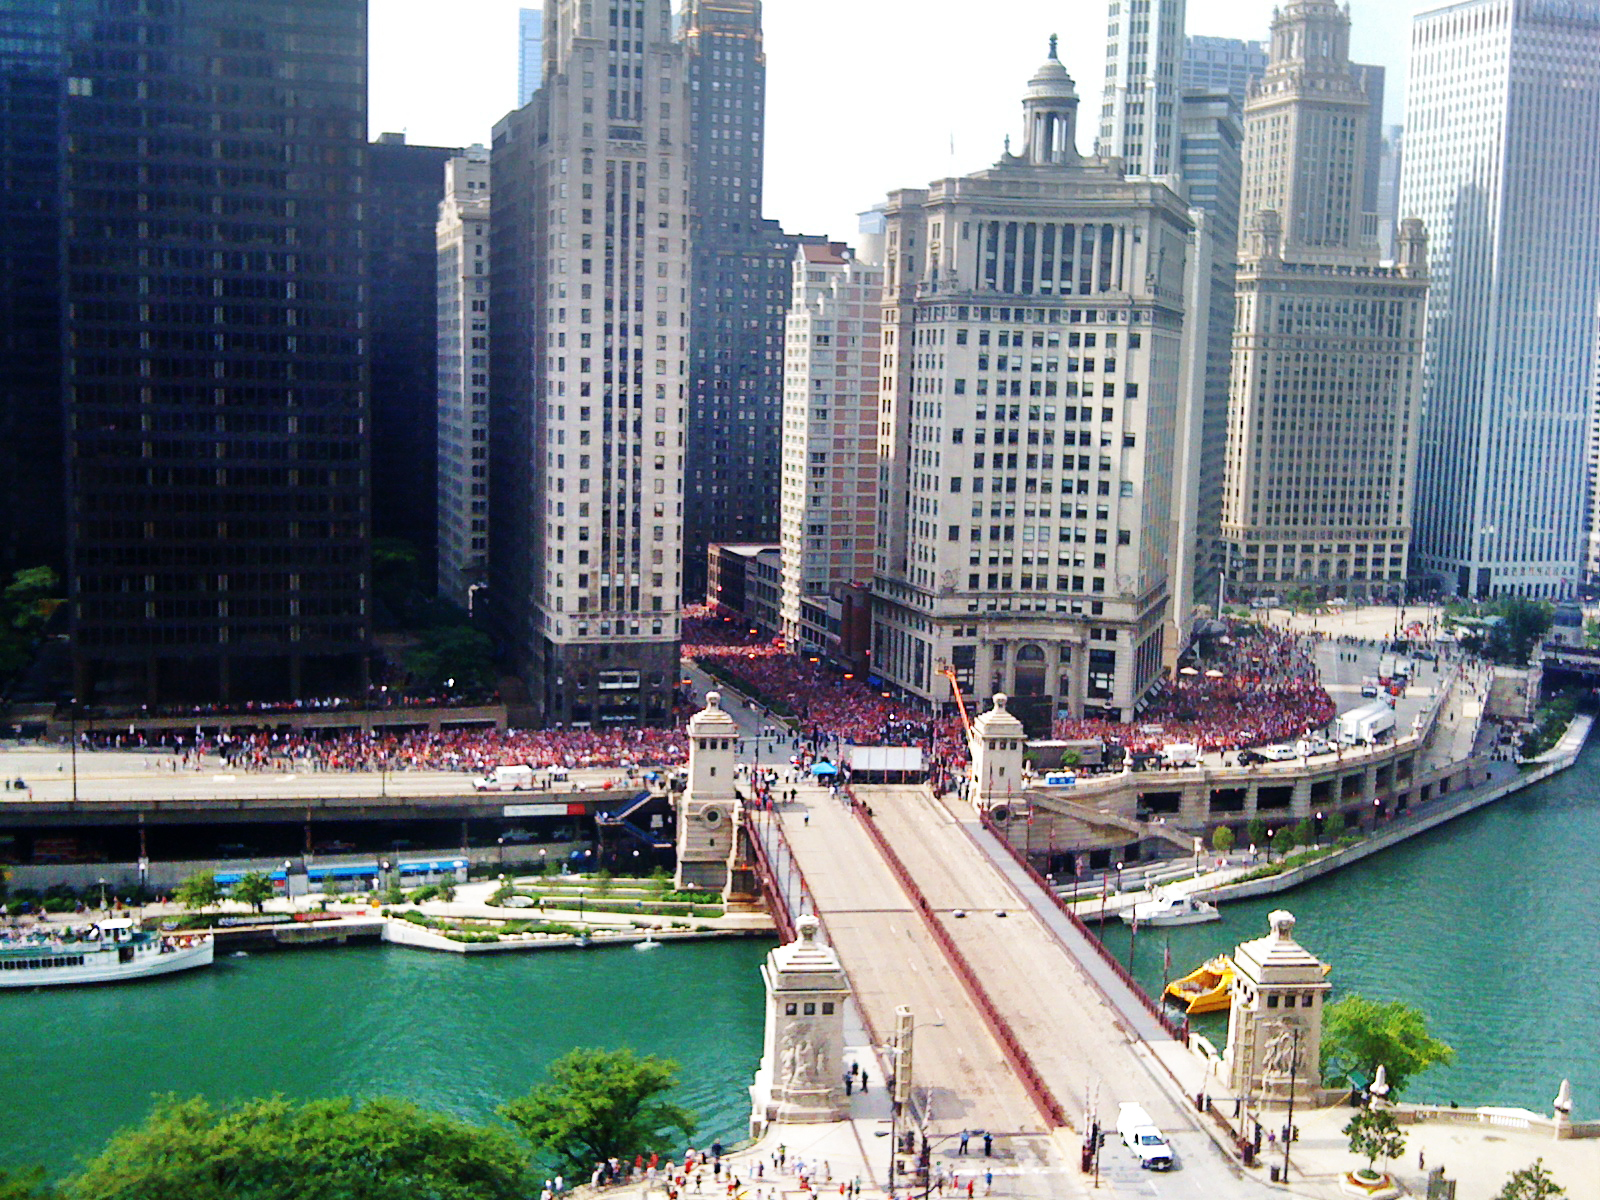 Aerial view of Blackhawks Stanley Cup celebration parade